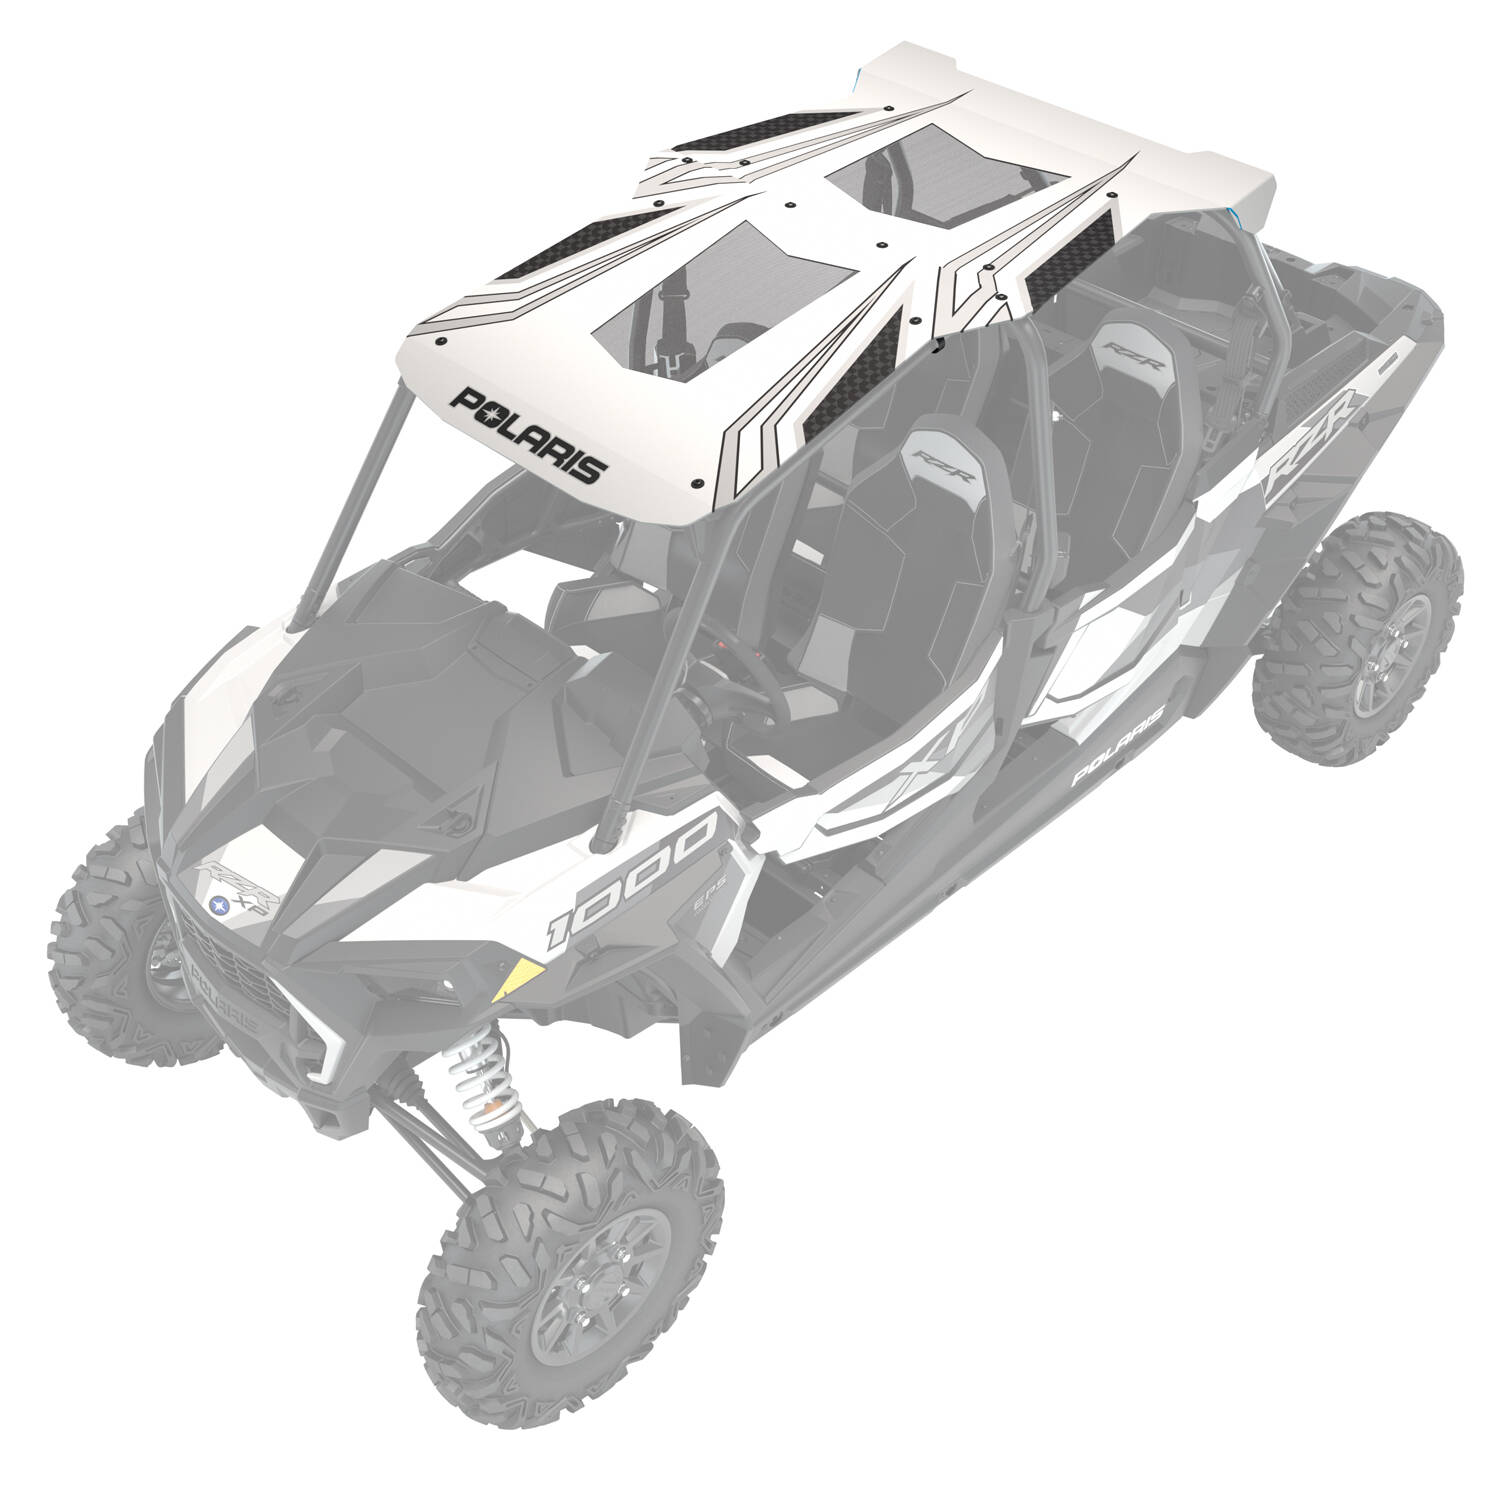 4-Seat Graphic Sport Roof- White